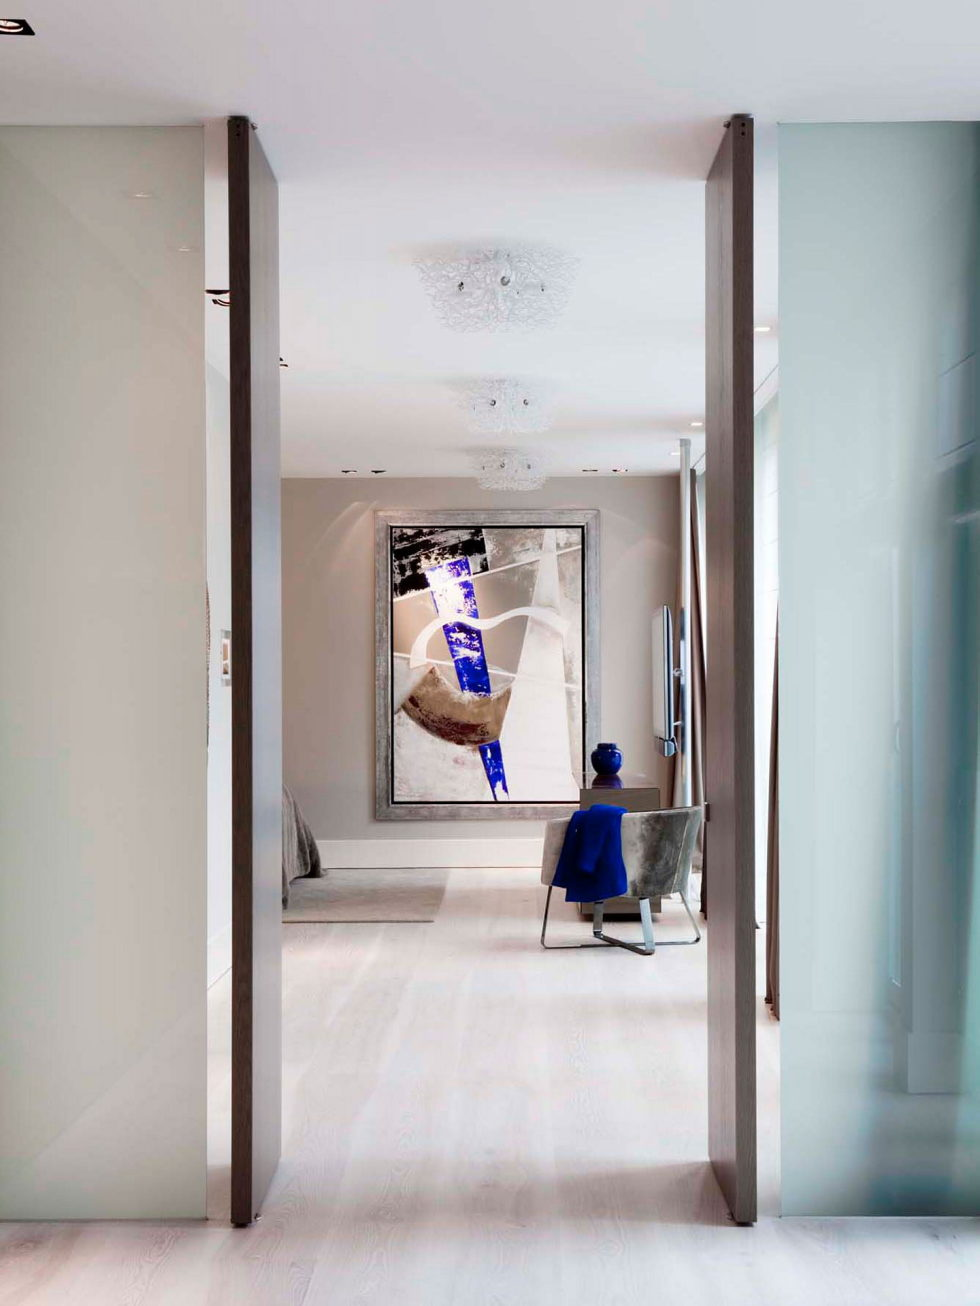 The Glass House In Amsterdam From Essentials Interieur and Roy De Scheemaker 17